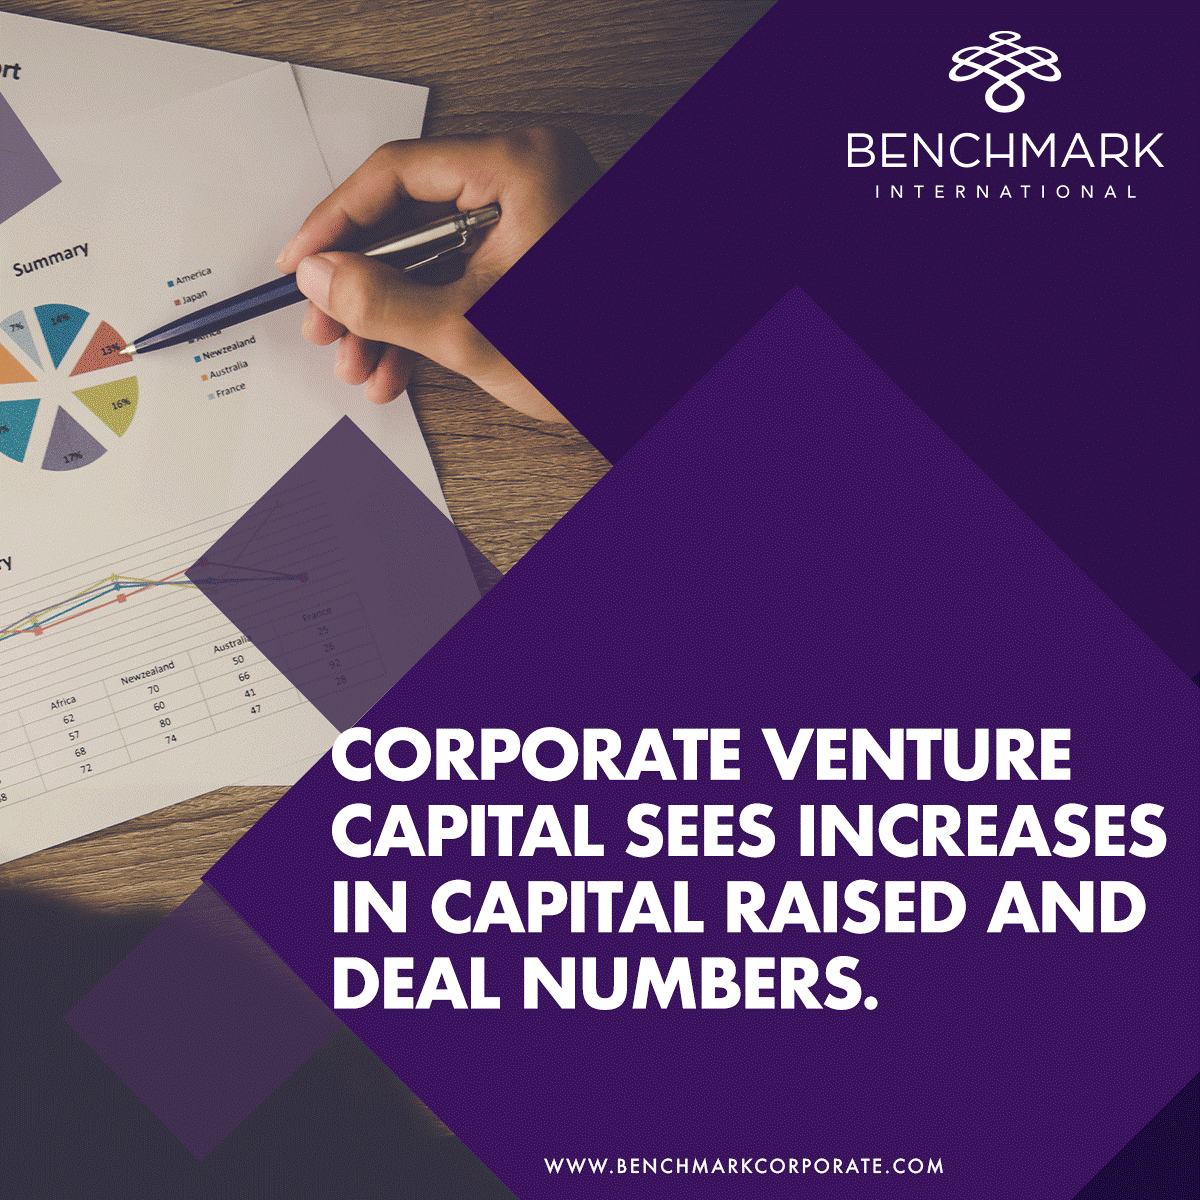 Increase corporate venture capital deals and capital